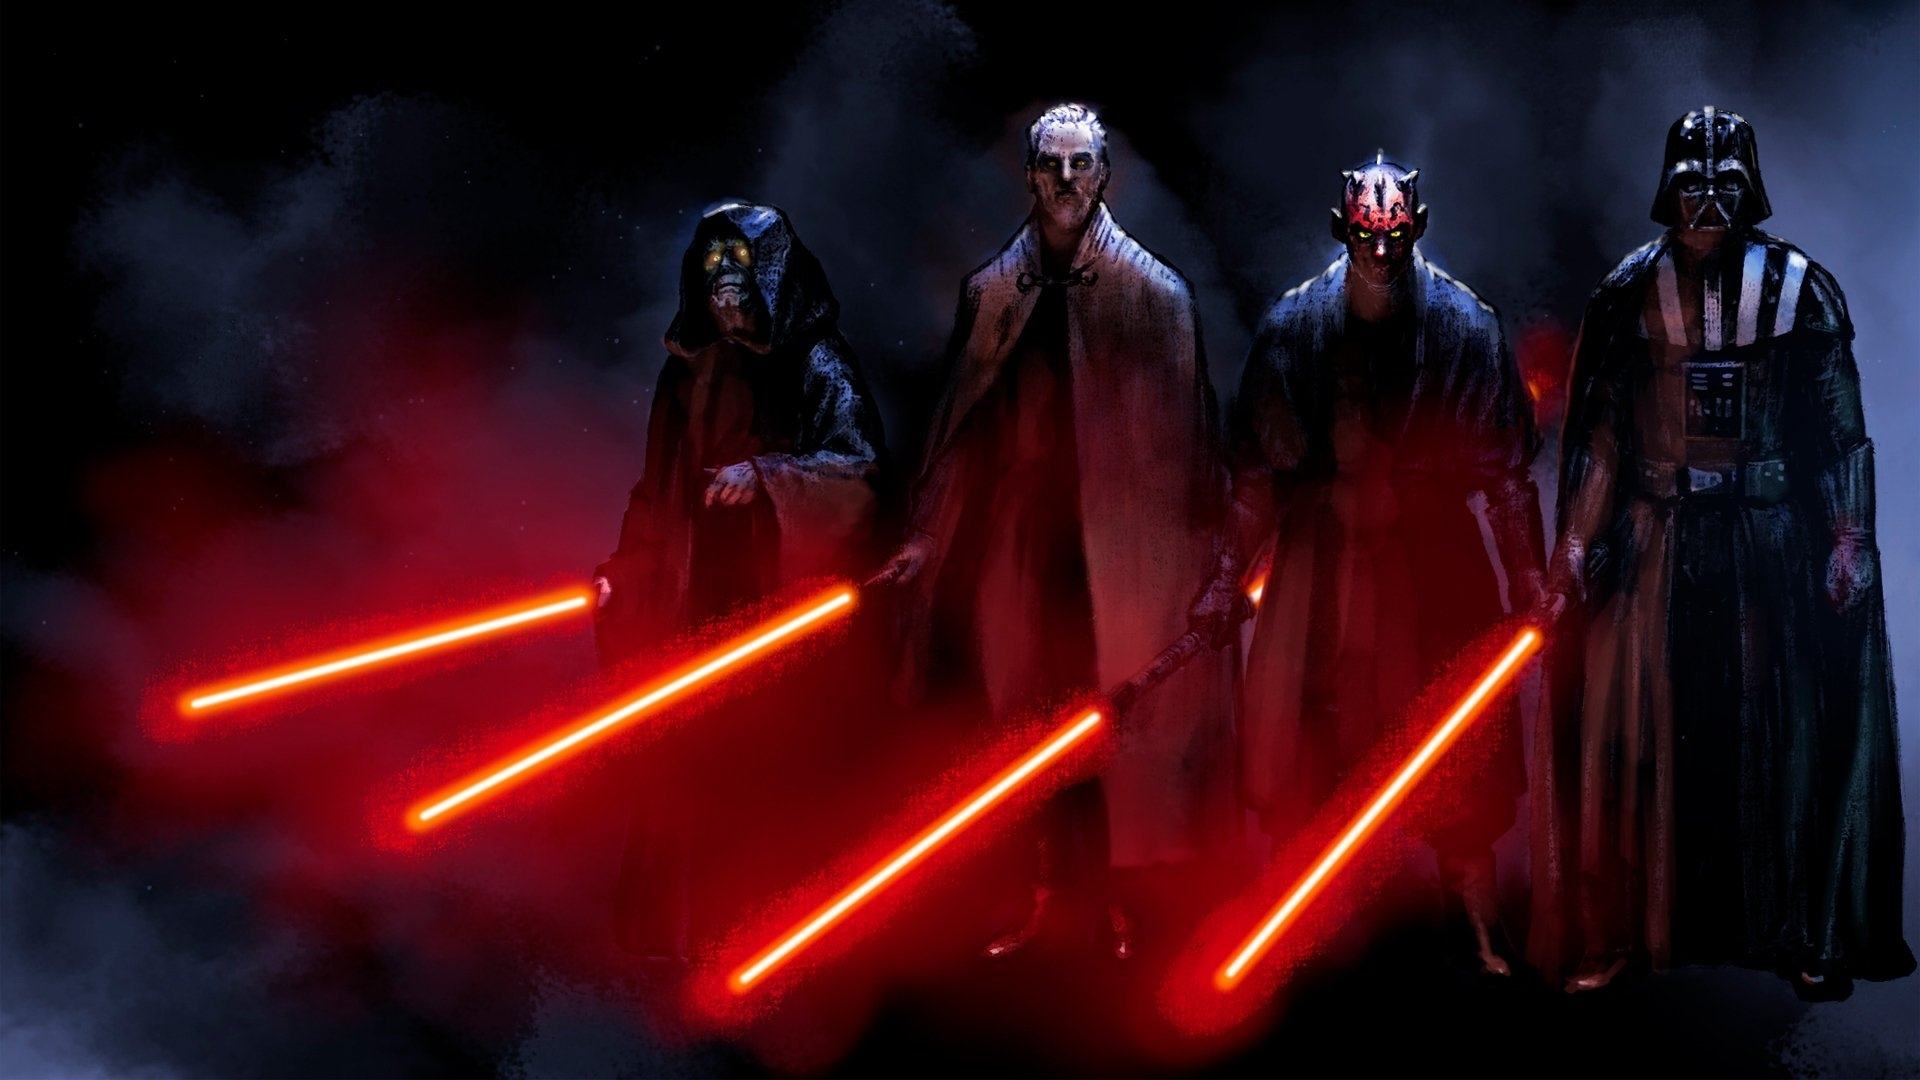 68 sith (star wars) hd wallpapers | background images - wallpaper abyss